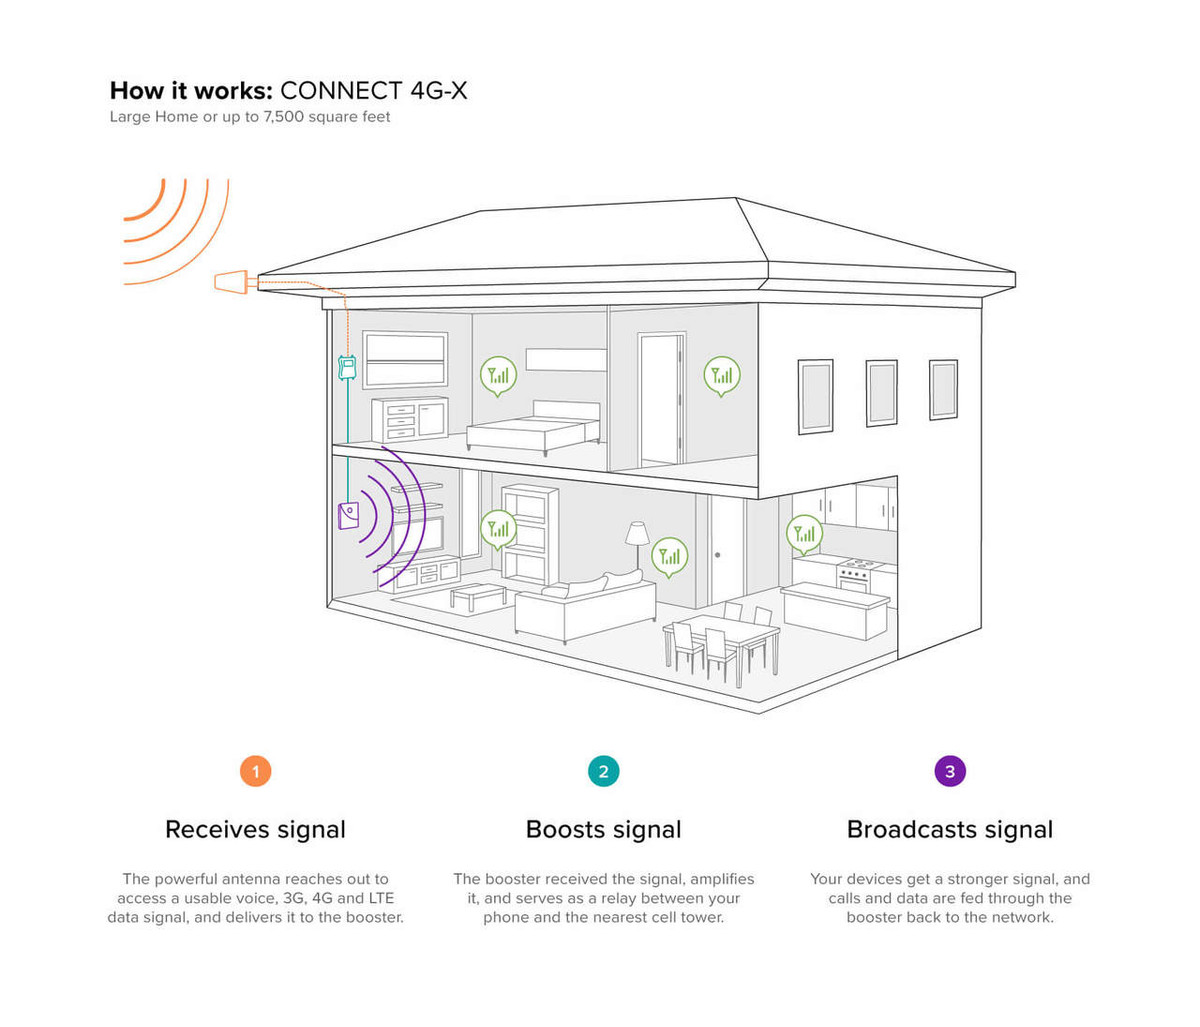 weboost connect 4g x cell phone signal booster 471104 diagram [ 1200 x 1027 Pixel ]